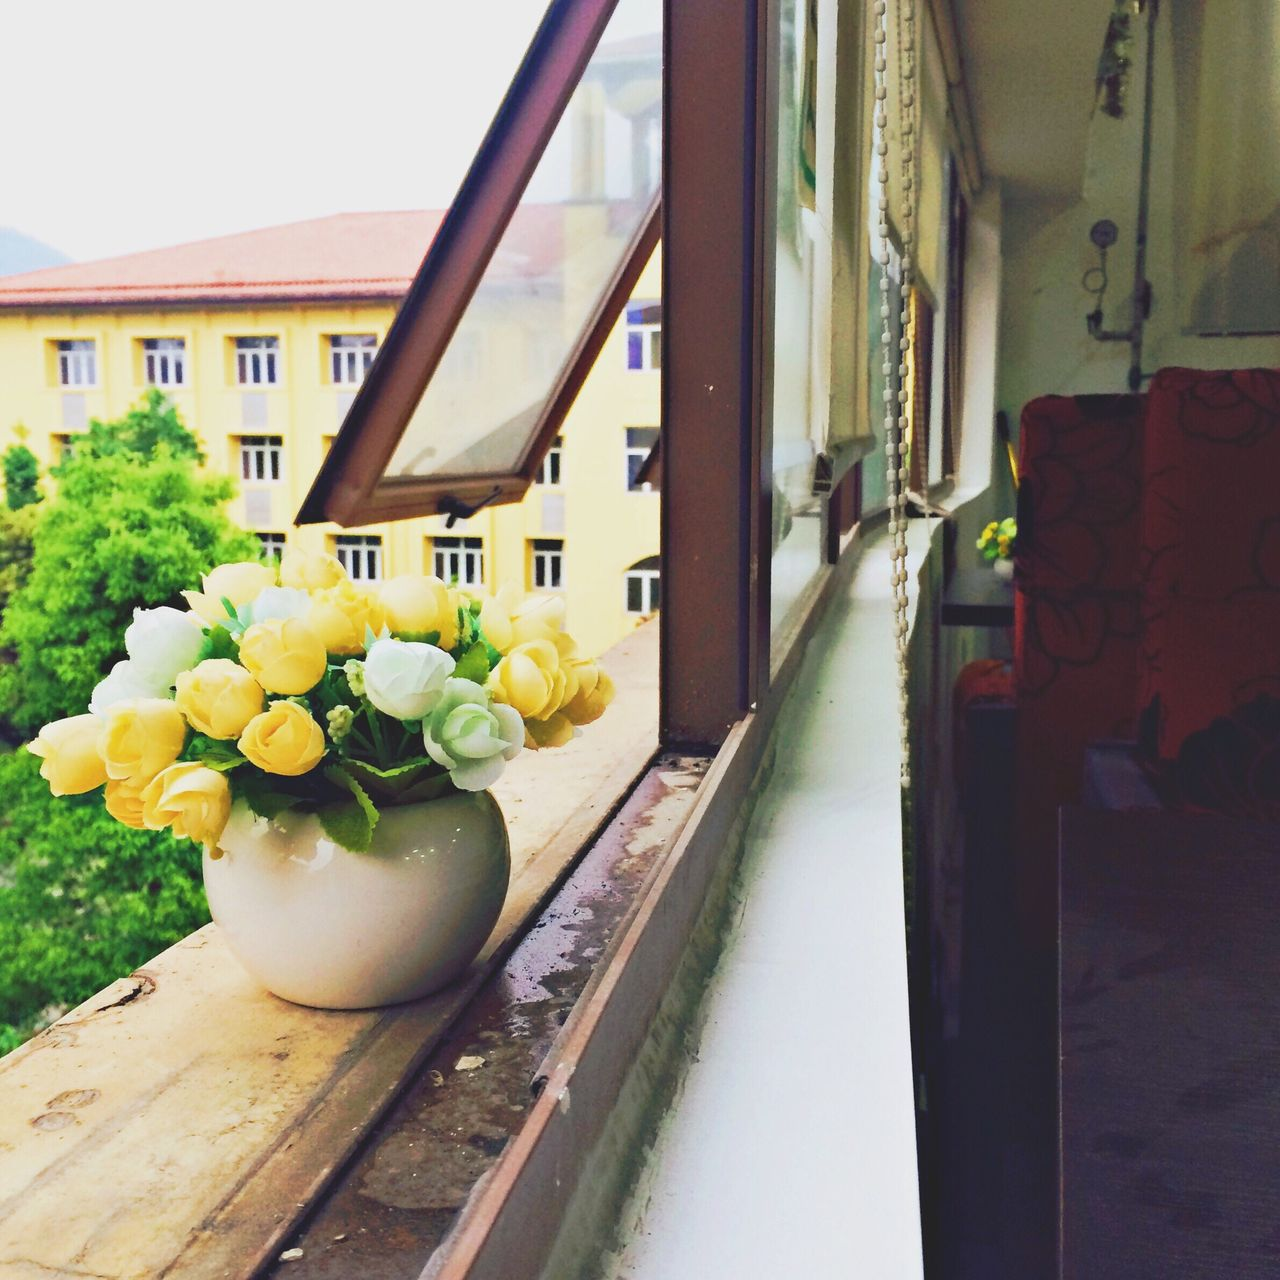 flower, architecture, window, no people, built structure, building exterior, day, nature, close-up, outdoors, sky